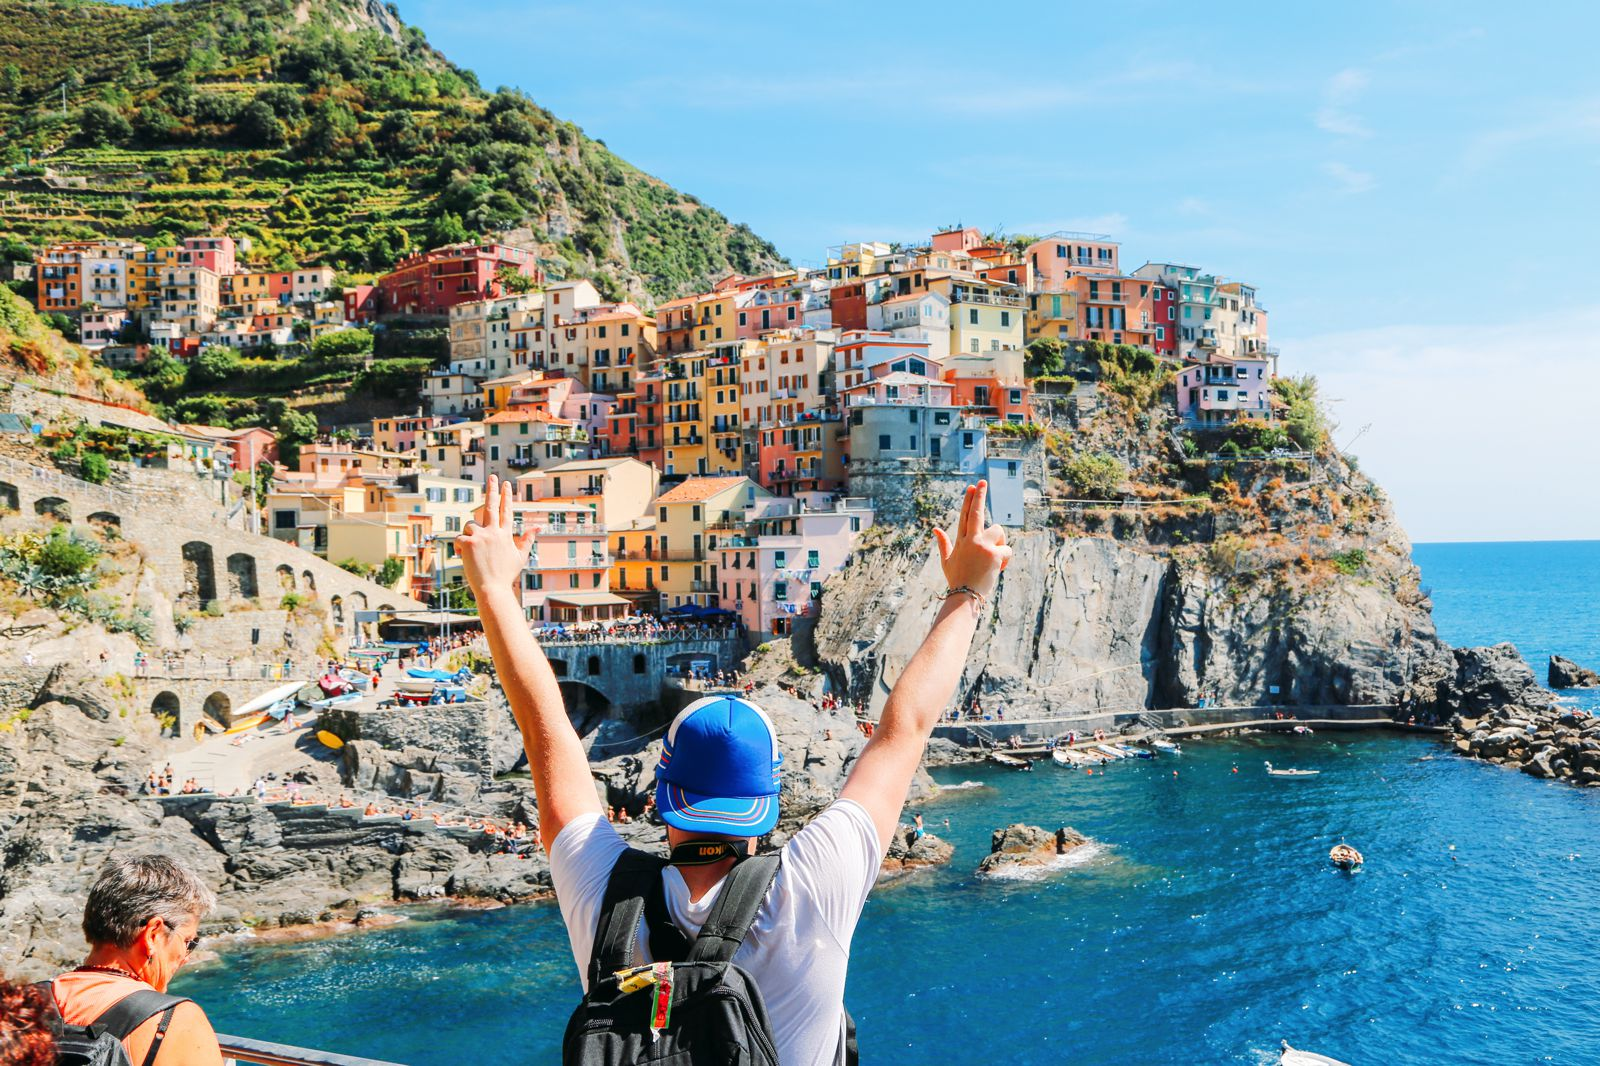 how to get to cinque terre from pisa